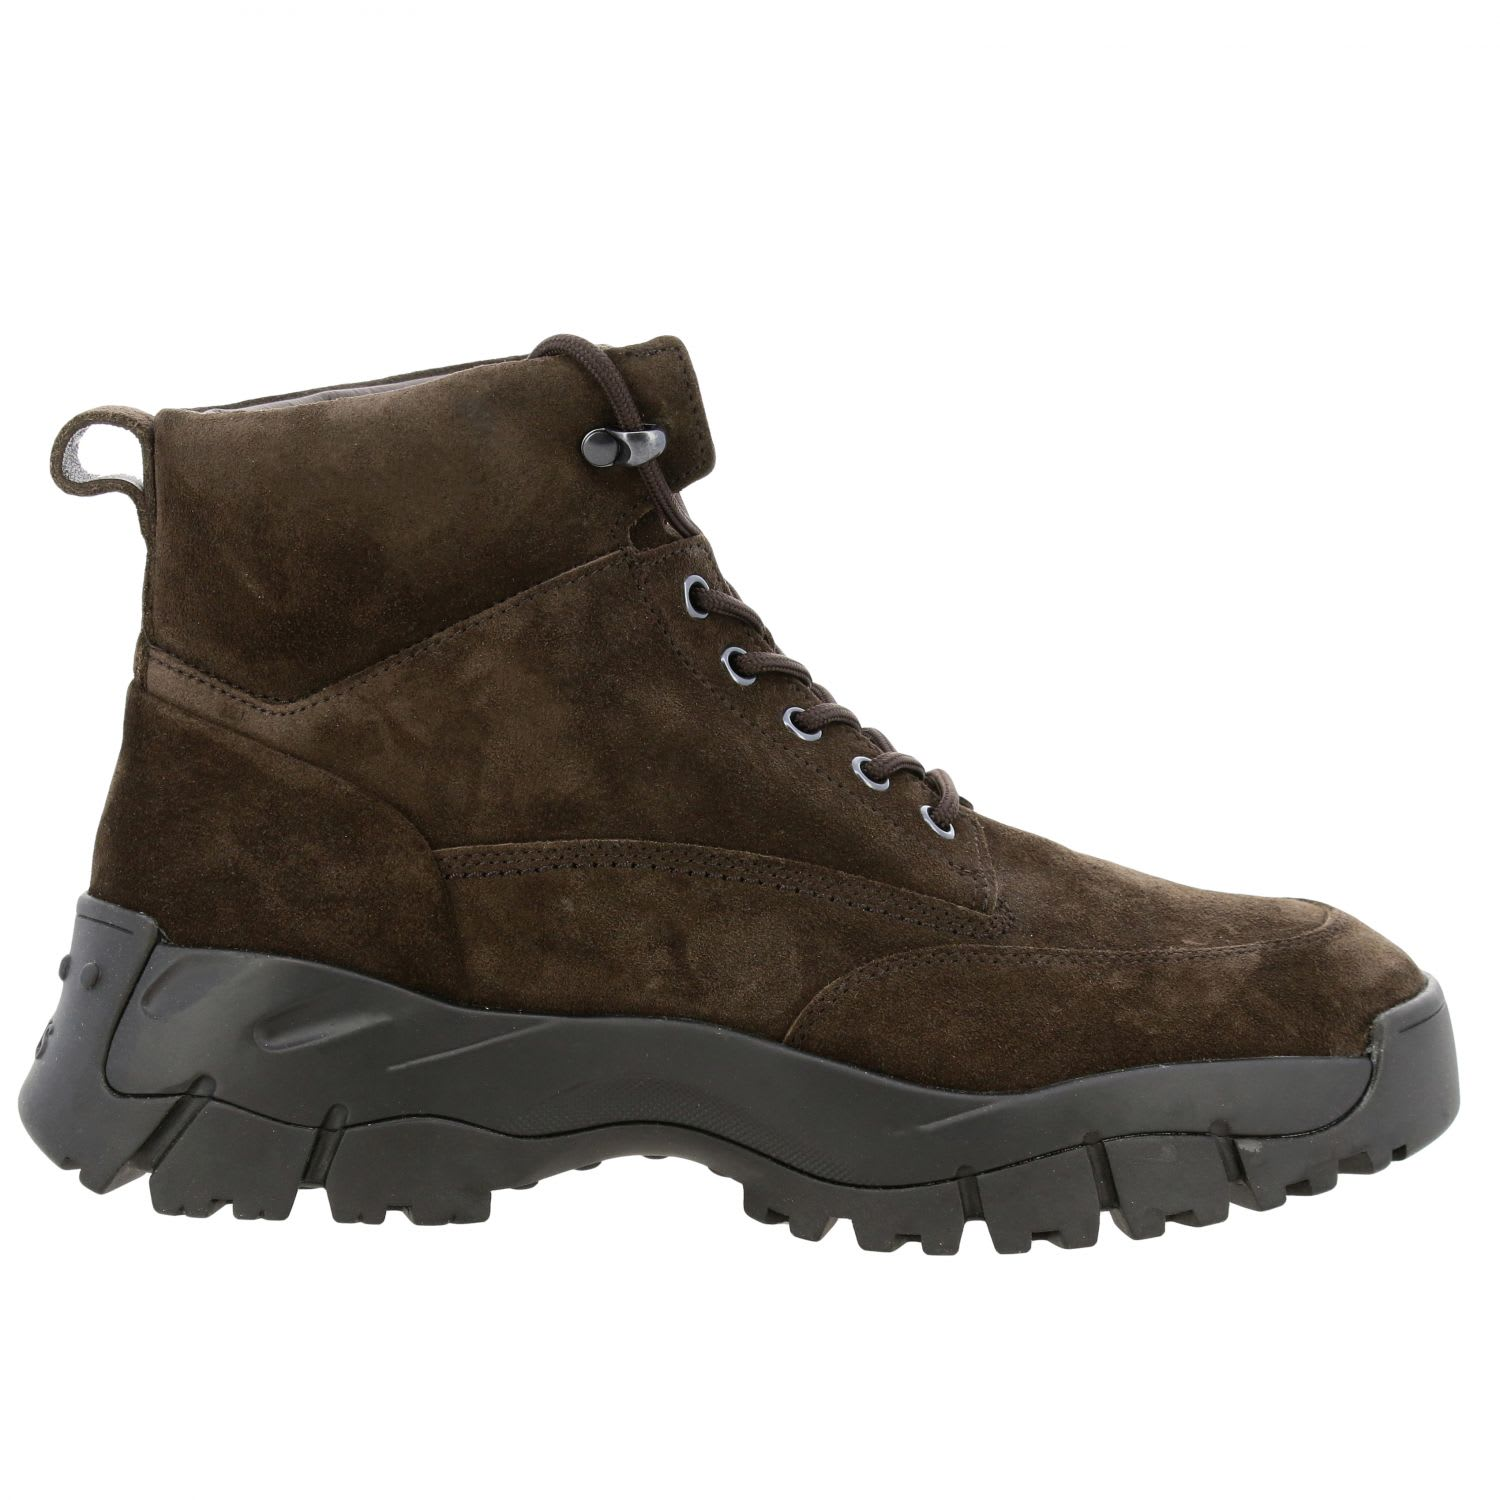 Tods Boots Shoes Men Tods